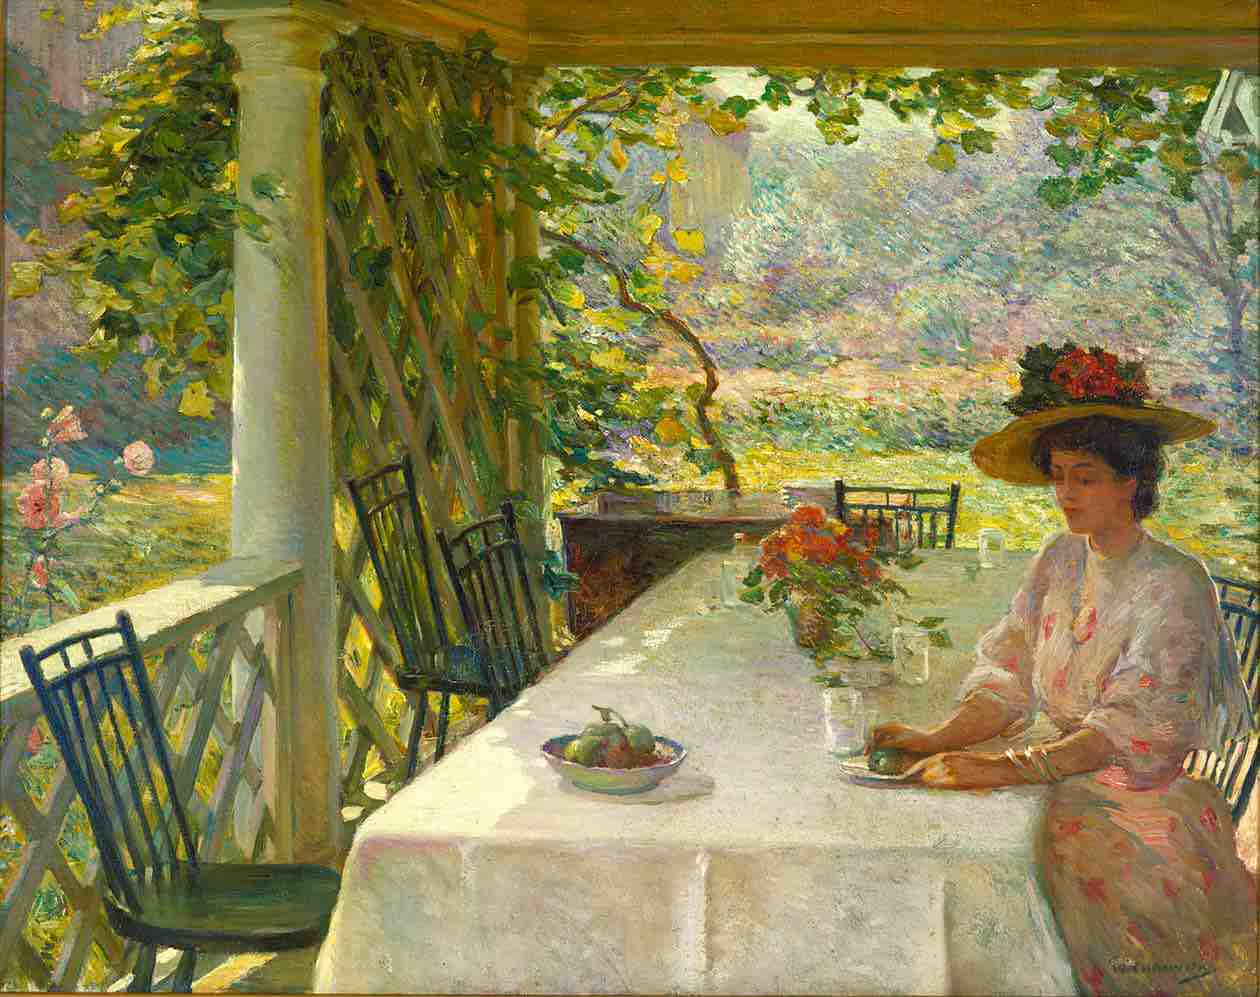 William Chadwick, On the Porch, c. 1908-1910, oil on canvas, Florence Griswold Museum, Old Lyme, Connecticut